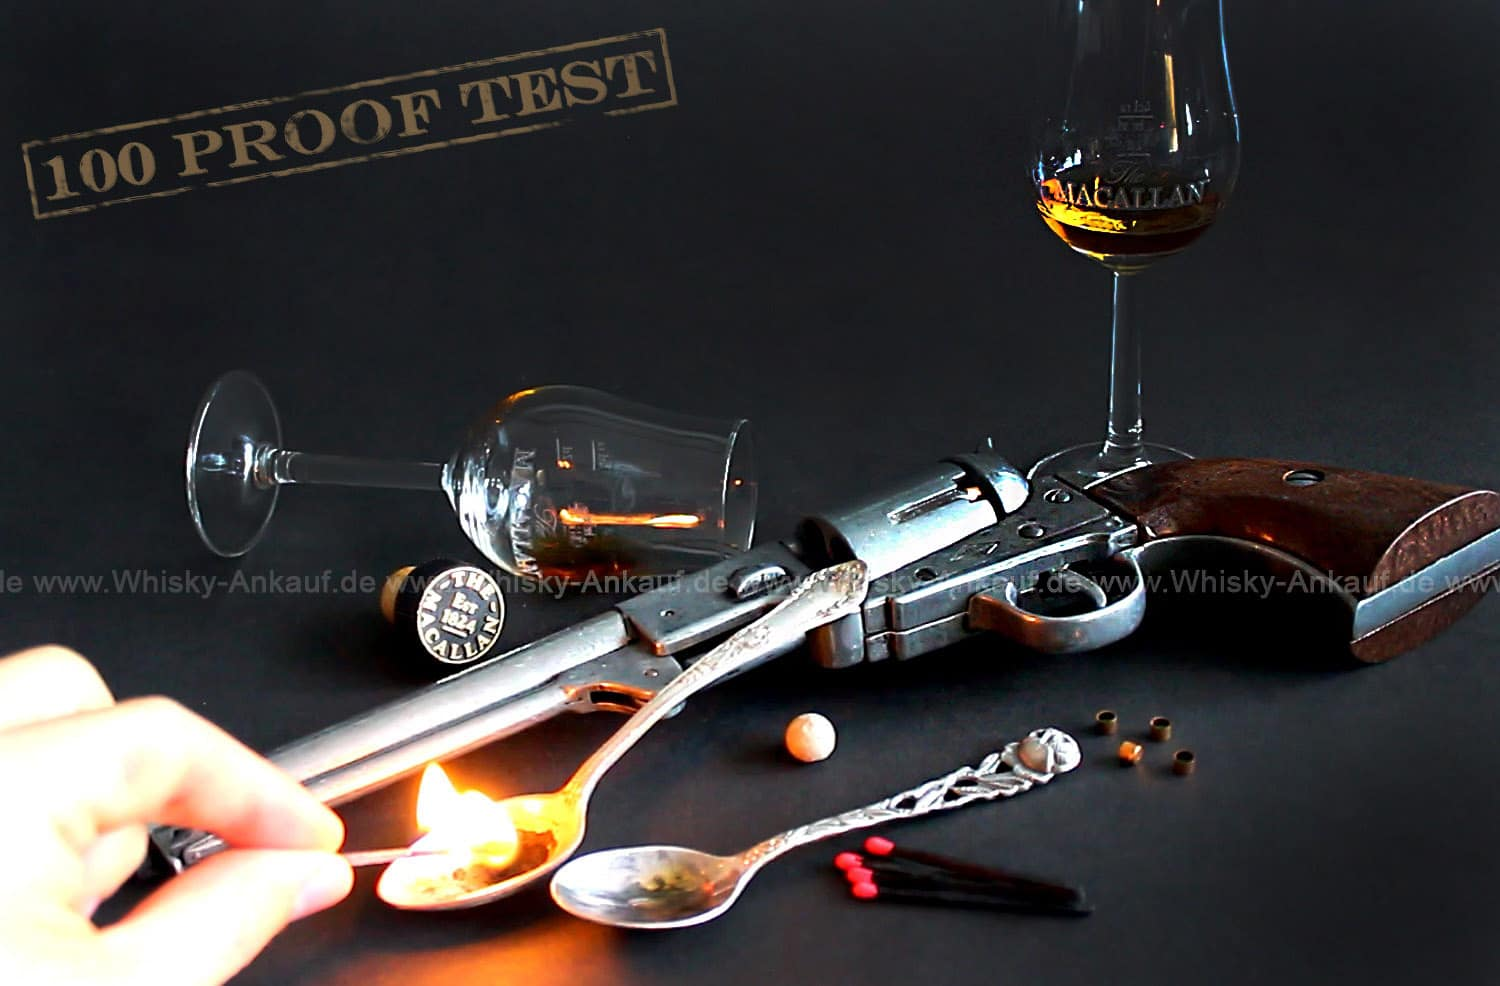 Proof Test | Whisky Ankauf